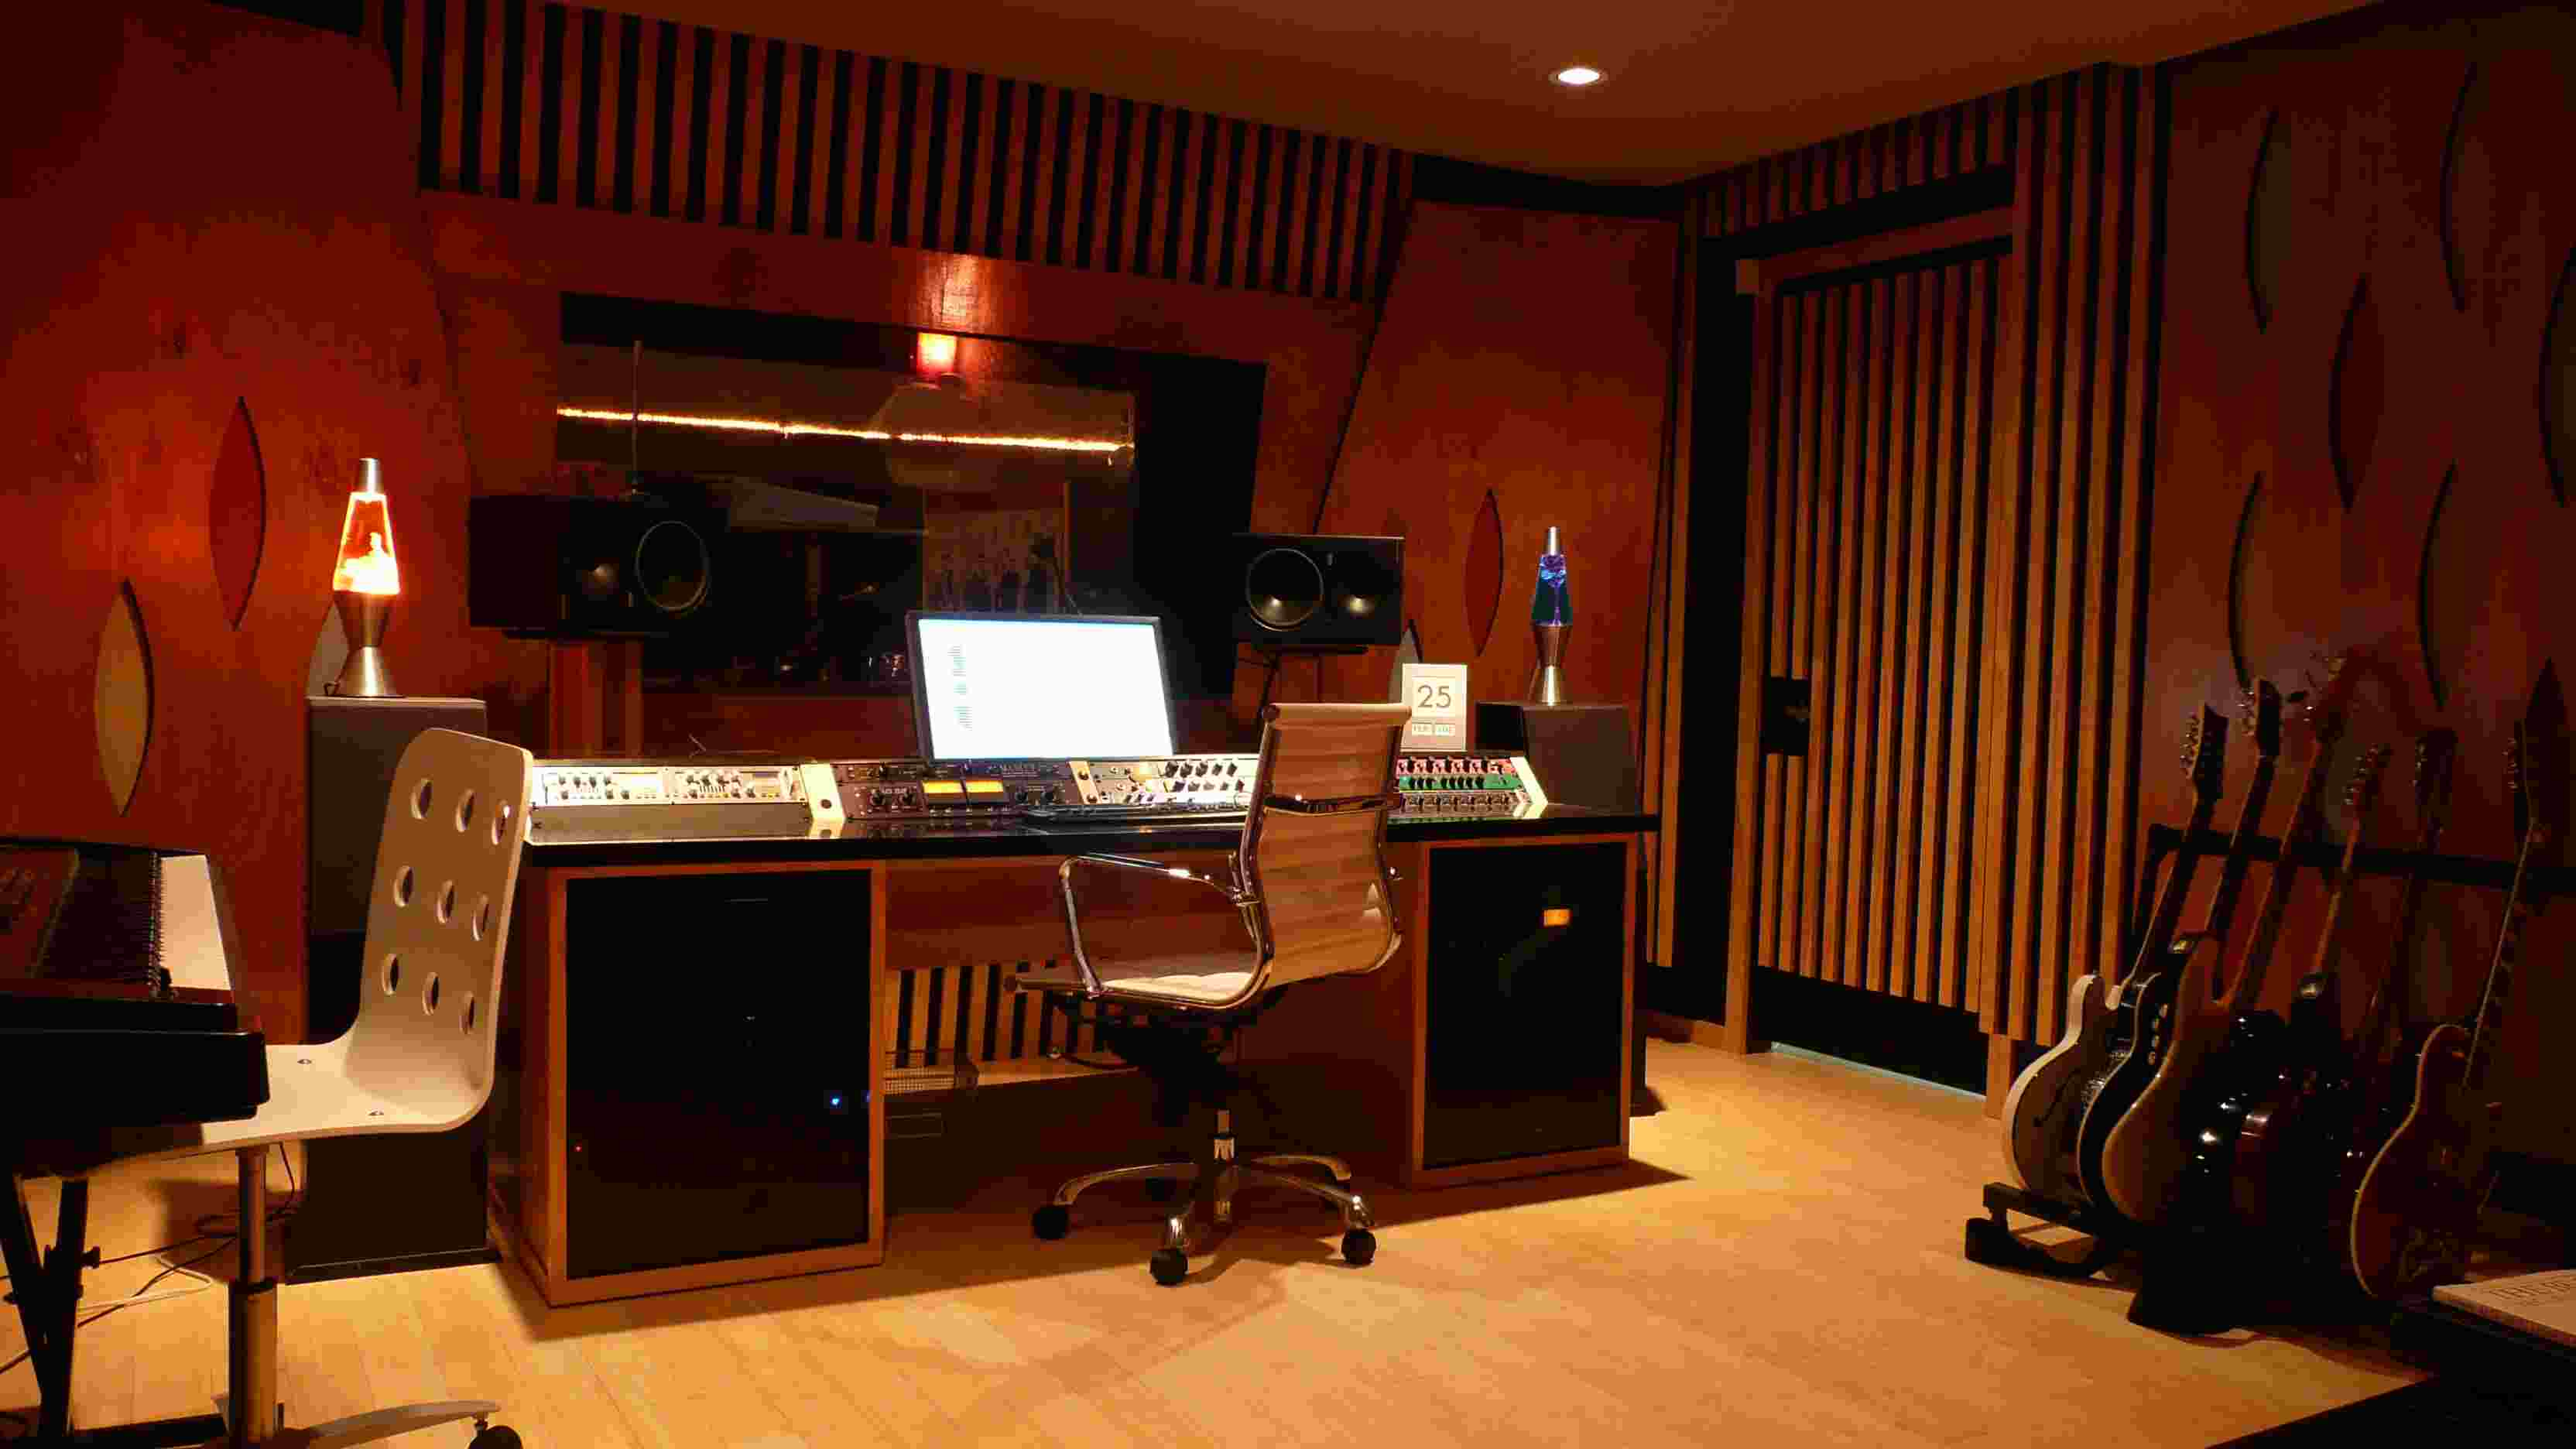 Lighting in a musical studio